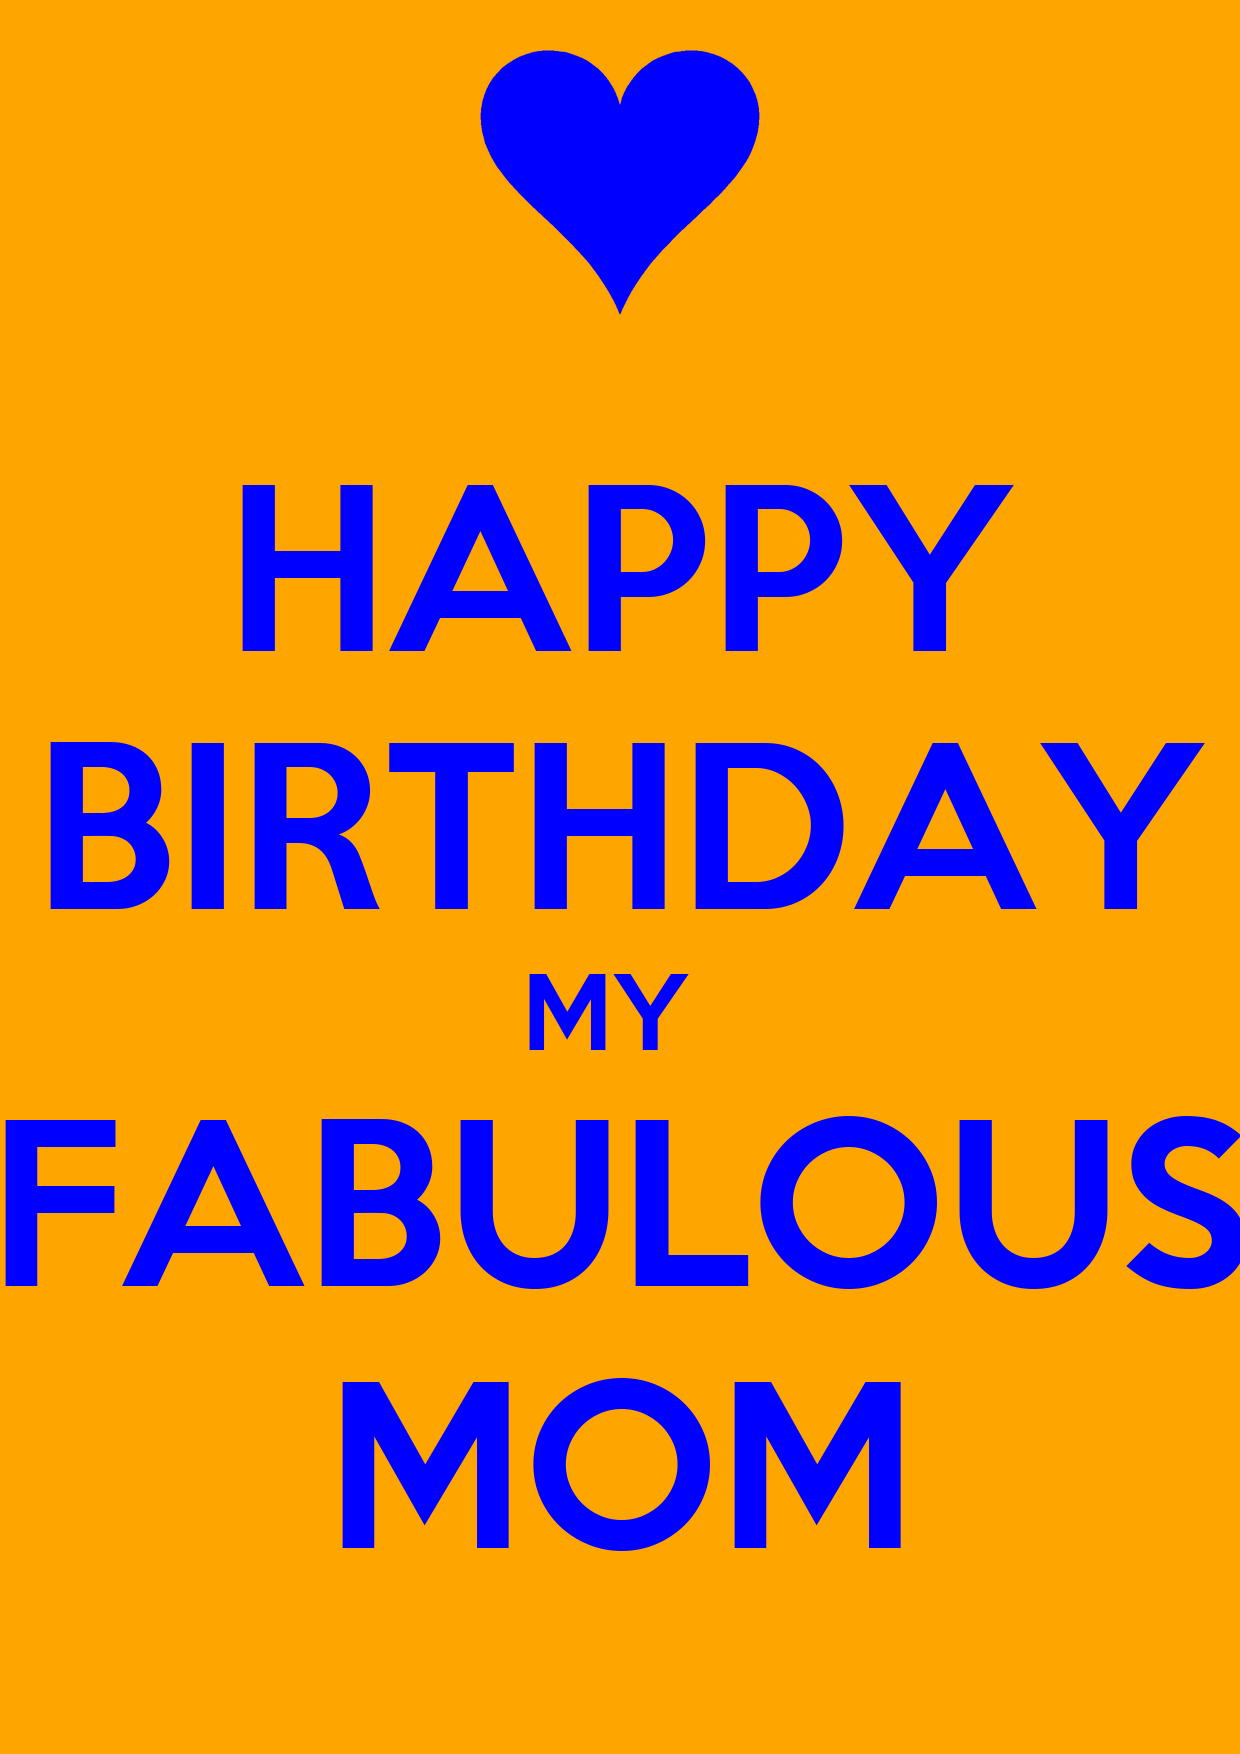 Happy Birthday My Fabulous Mom Poster